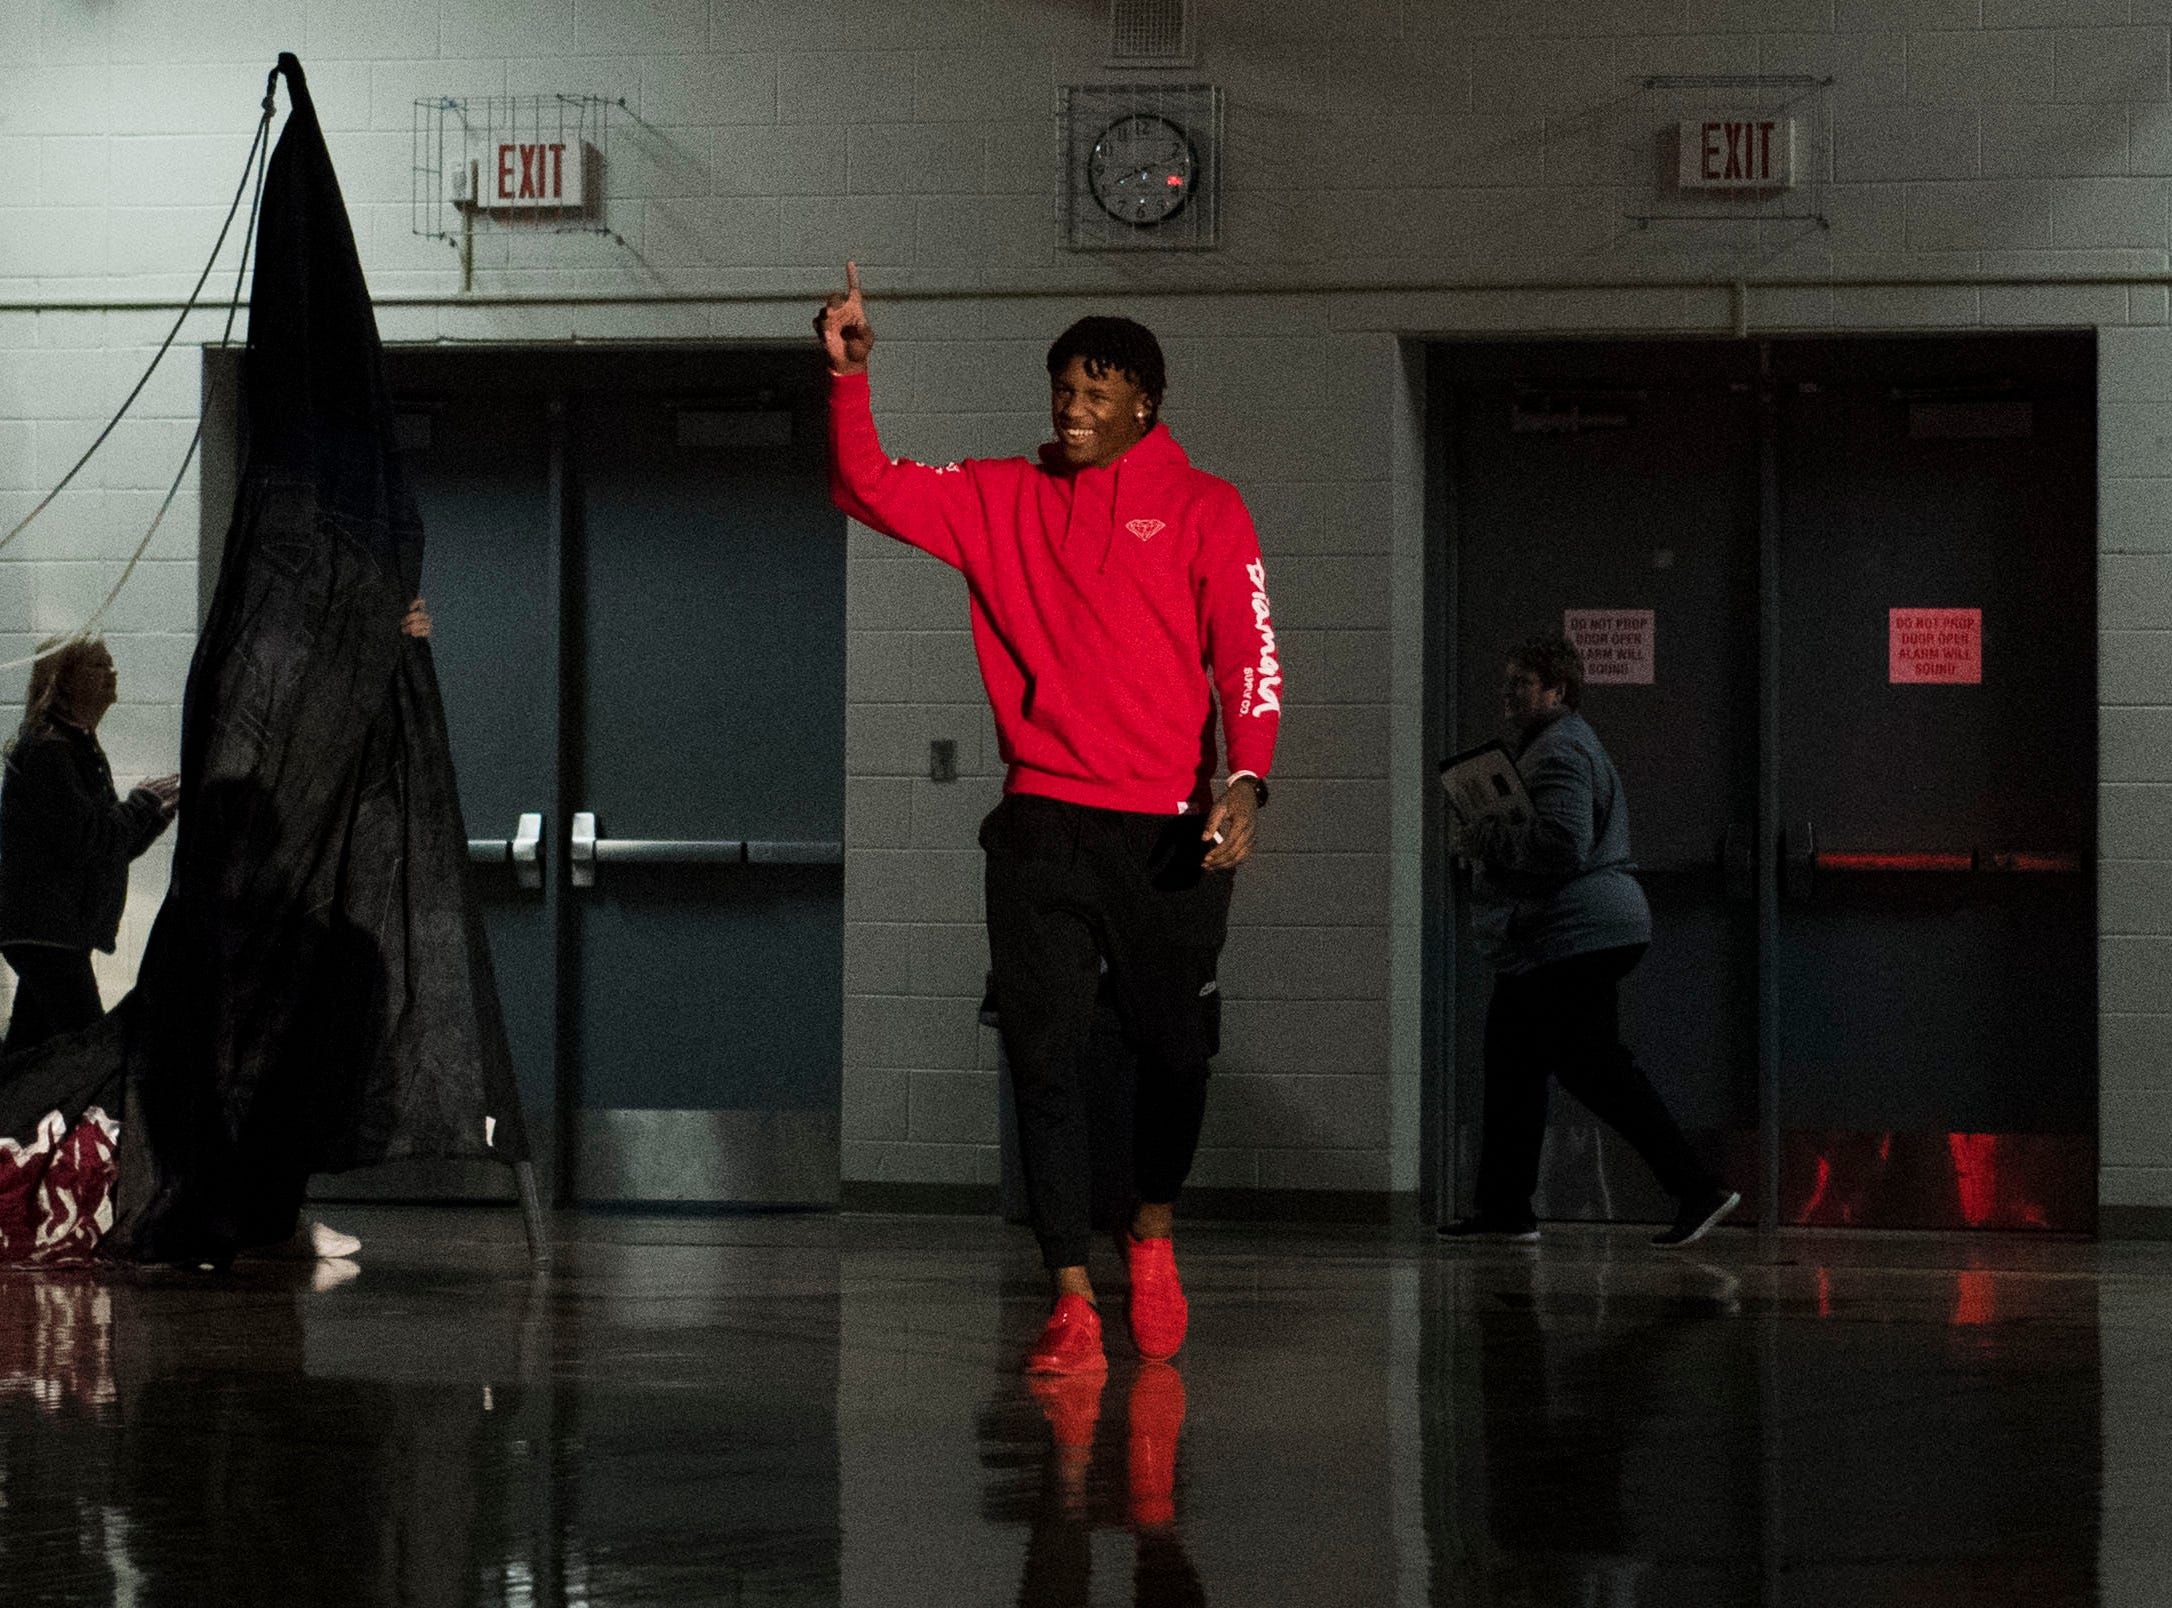 Former Oak Ridge High School athlete Tee Higgins, now a wide receiver at Clemson University, returns to the court for his jersey to be retired, during a high school basketball game between Oak Ridge and Campbell County at Oak Ridge Friday, Feb. 1, 2019.